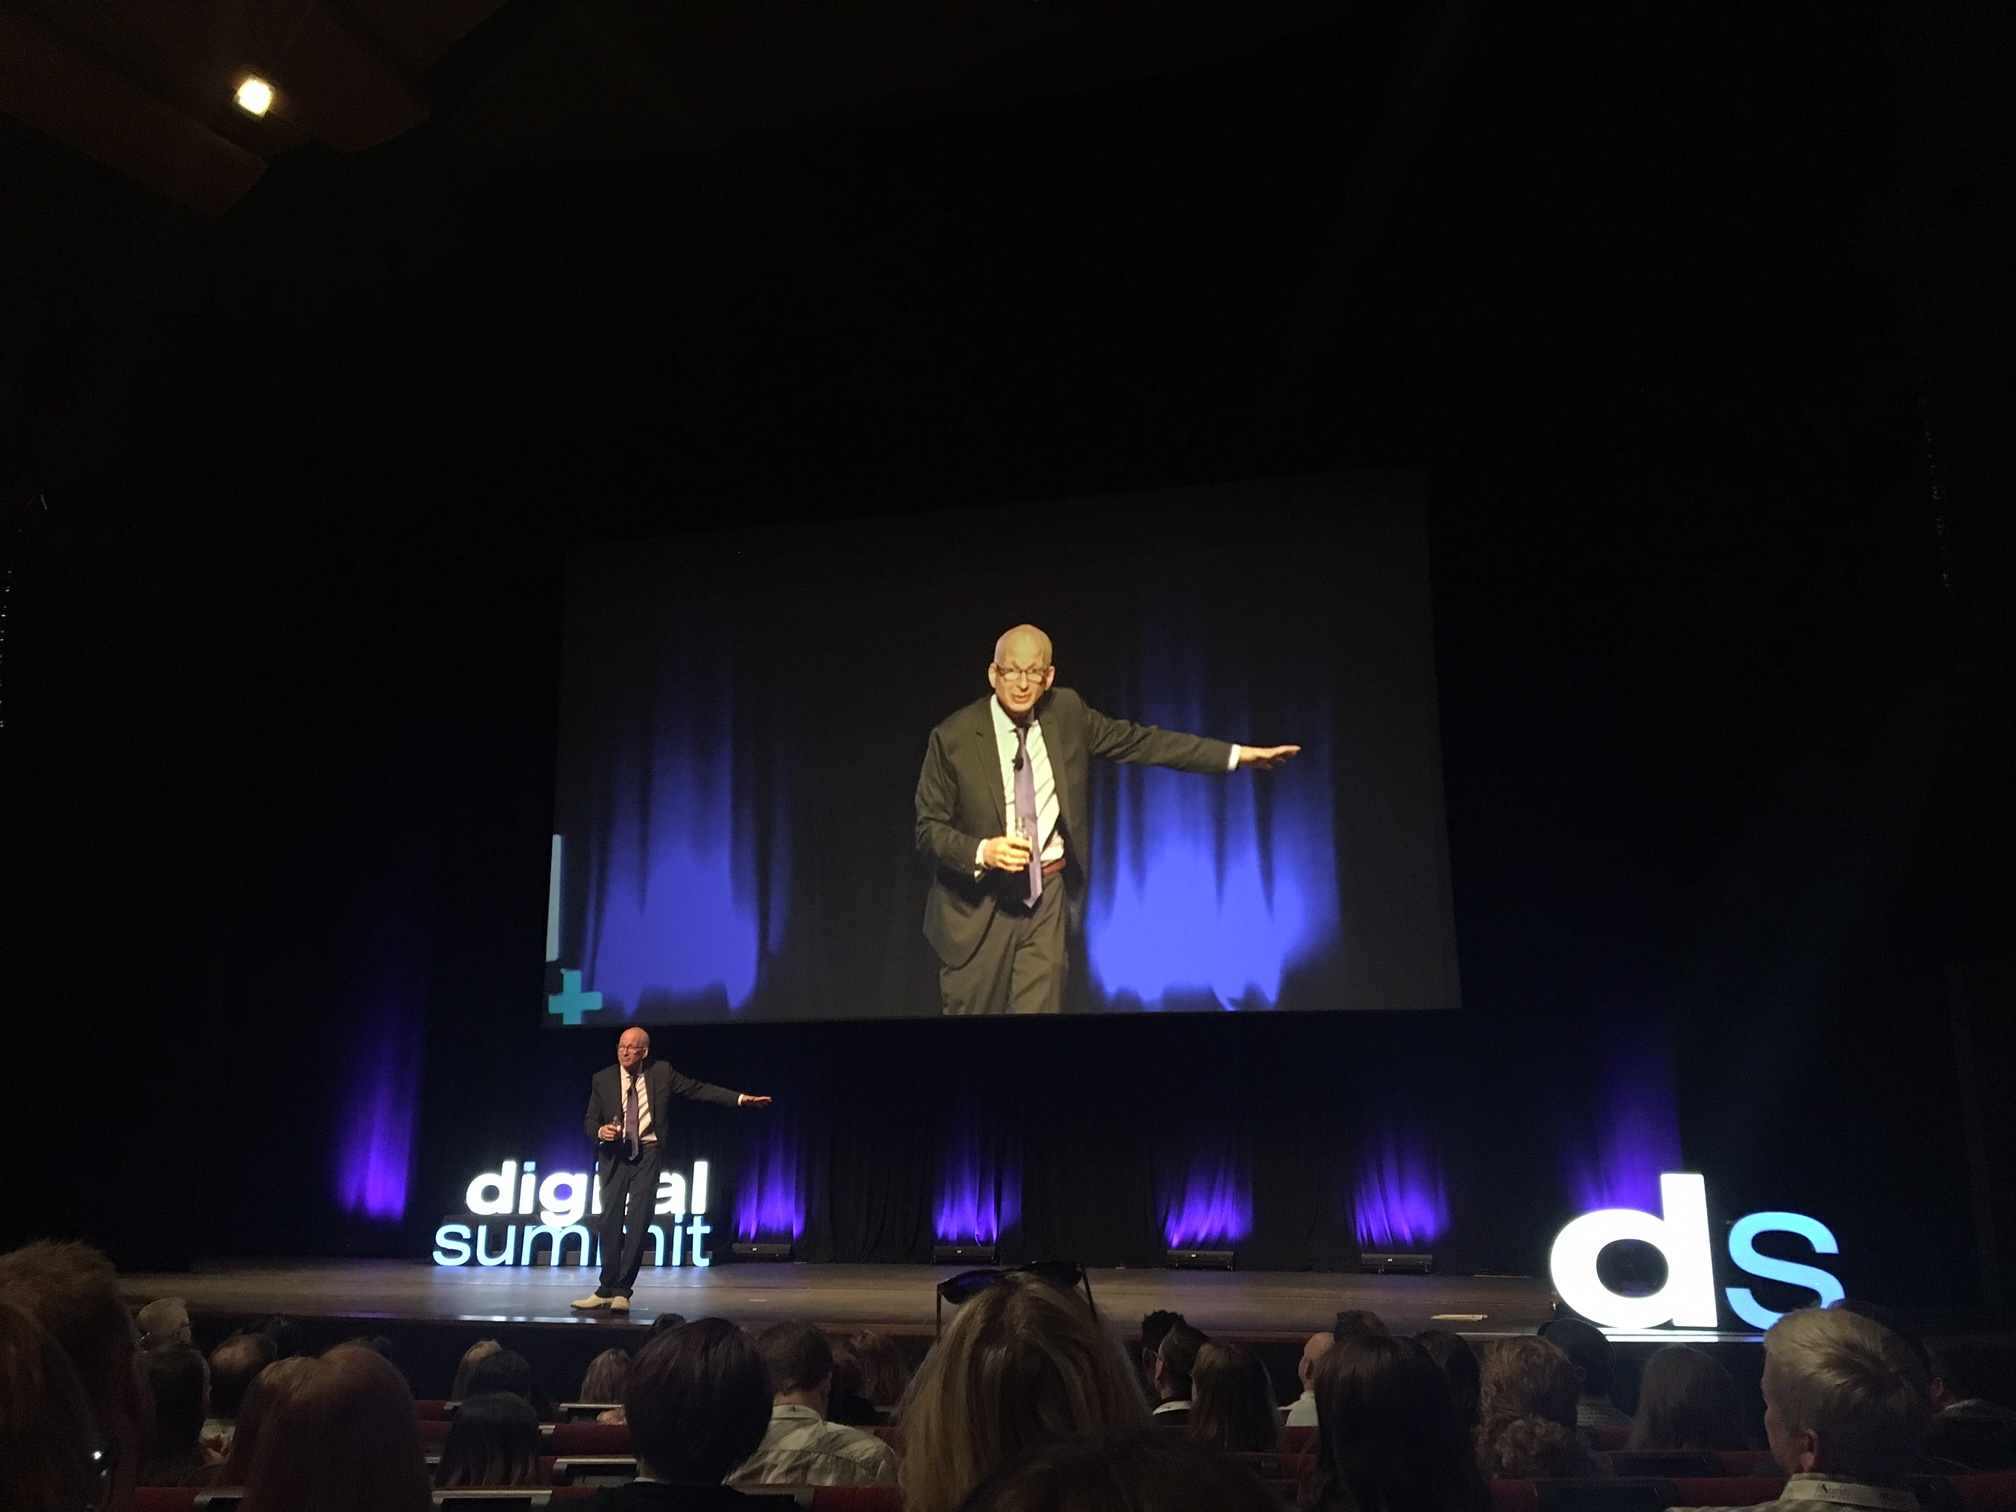 People like us do things like [attend nerdy marketing conferences and listen to awesome presentations by Seth Godin]